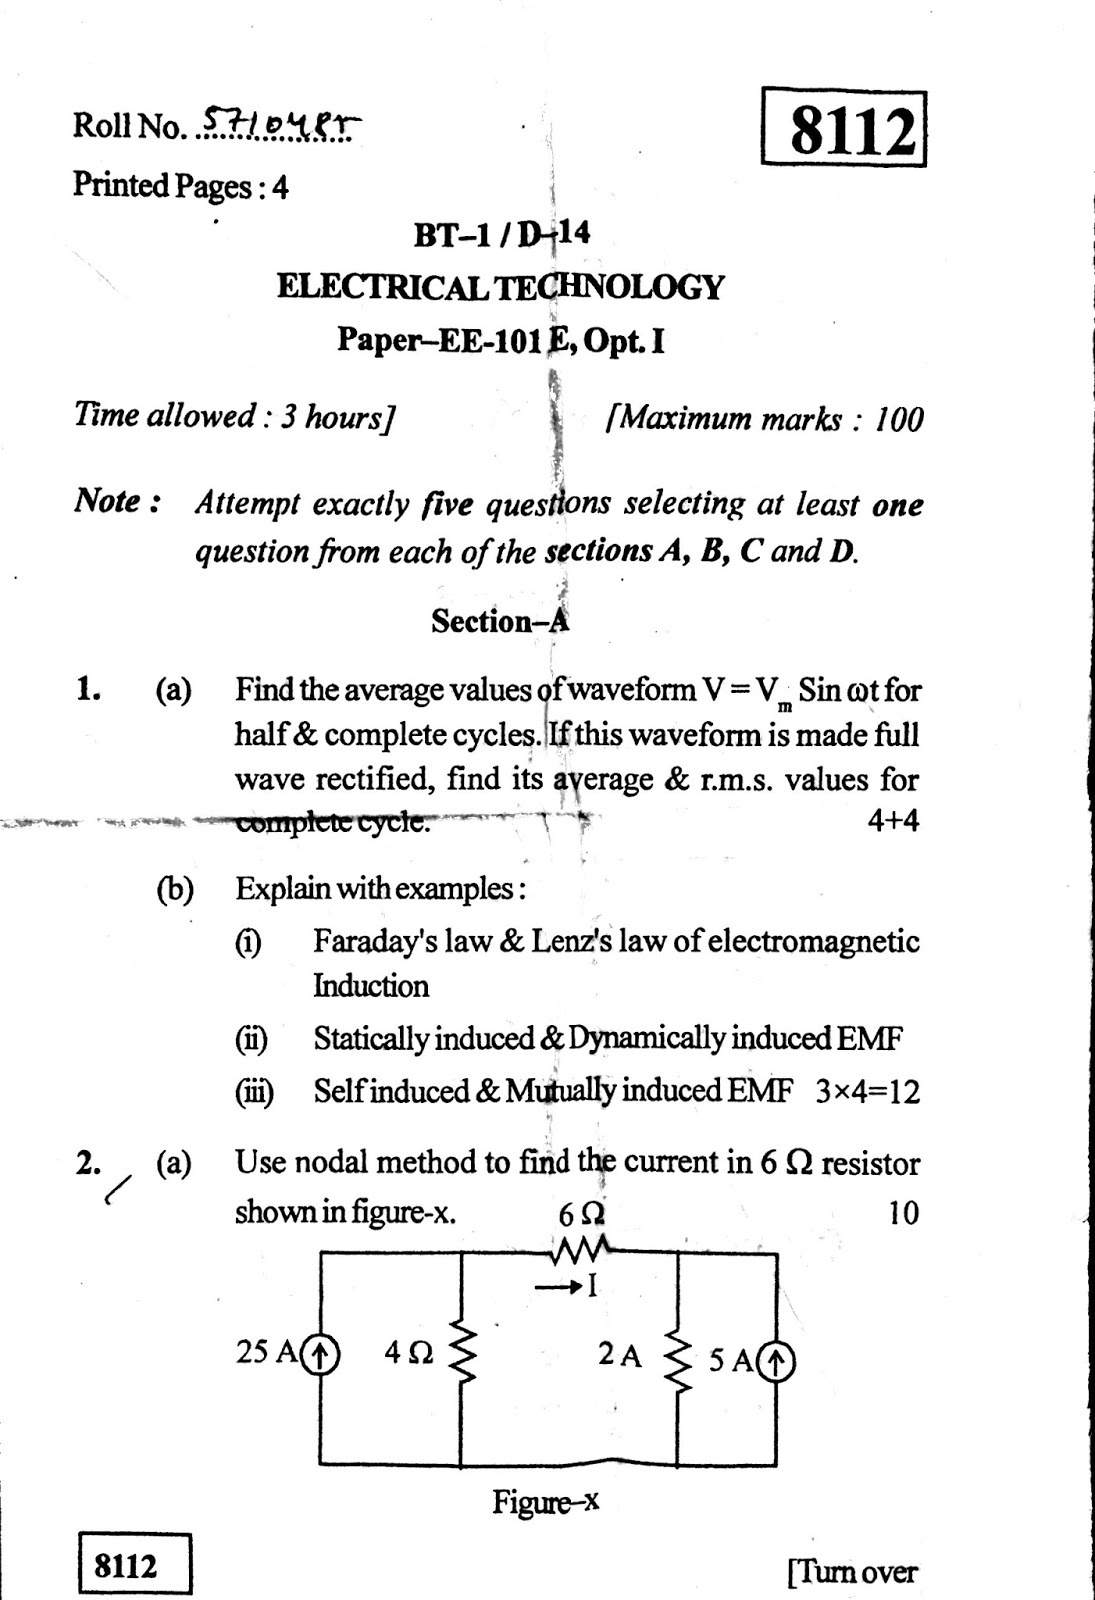 BTECH PREVIOUS YEAR QUESTION PAPERS KUK Electrical Technology 2014